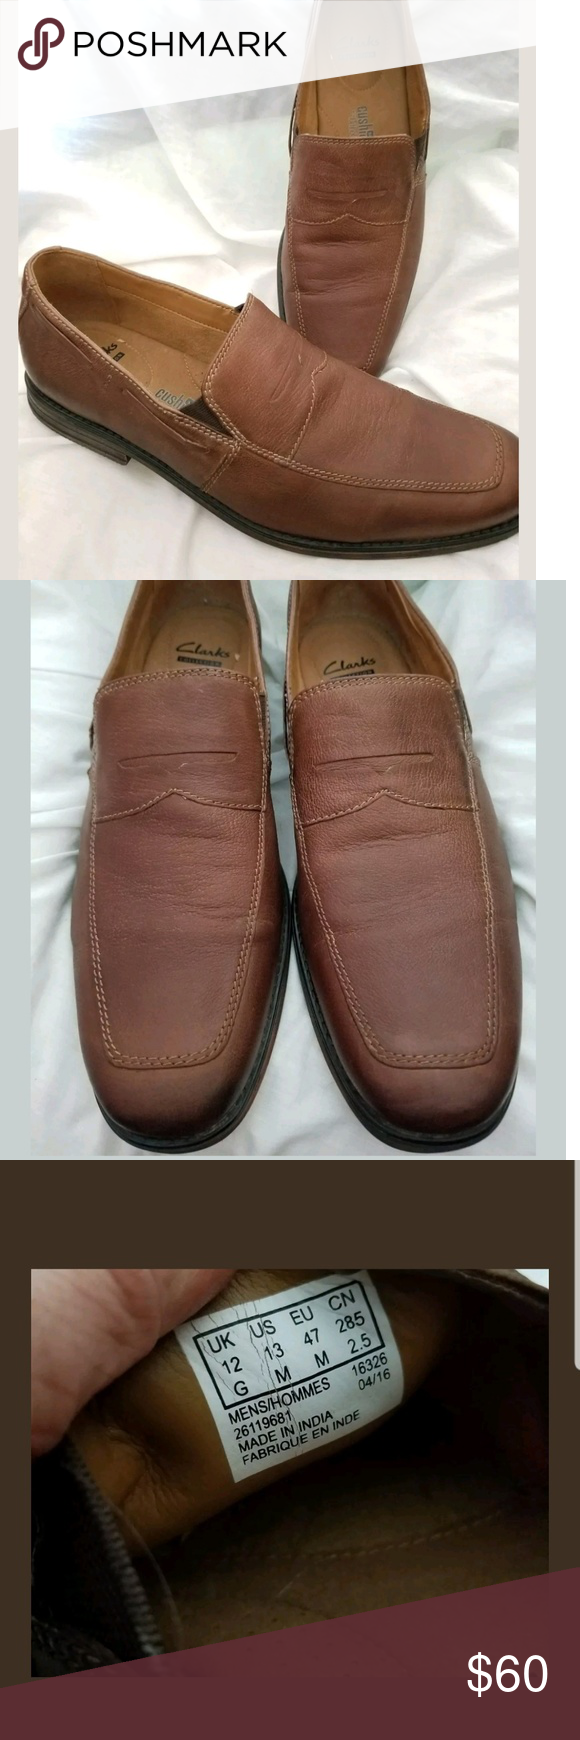 b0a42f4adfa Clark s Collection Holmby Step penny loafer 13 M Light and comfortable Clarks  mens penny loafer 13 M Holmby Step. Brown leather uppers